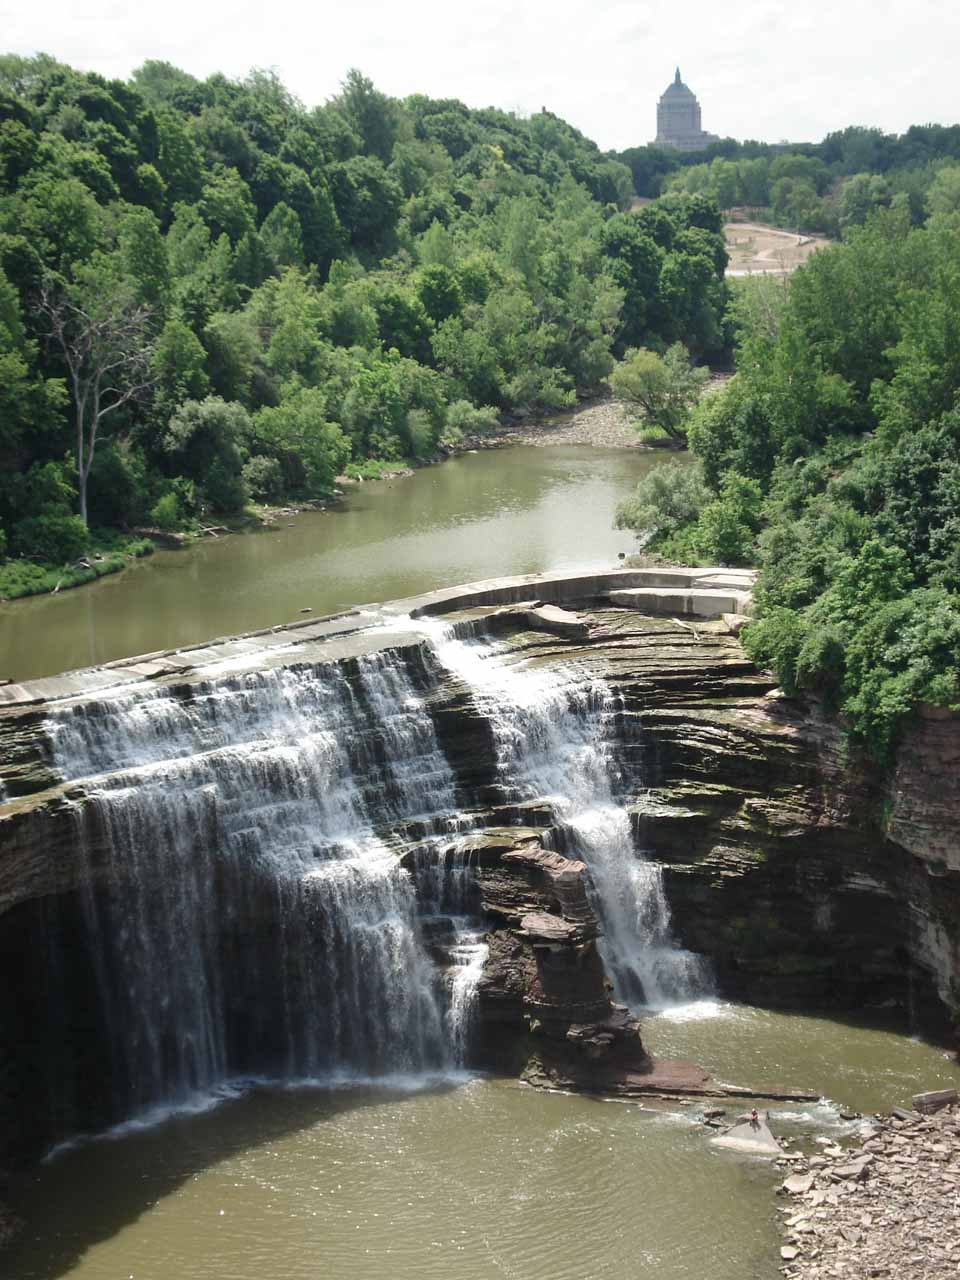 The Lower Falls of the Genesee River in Rochester, NY